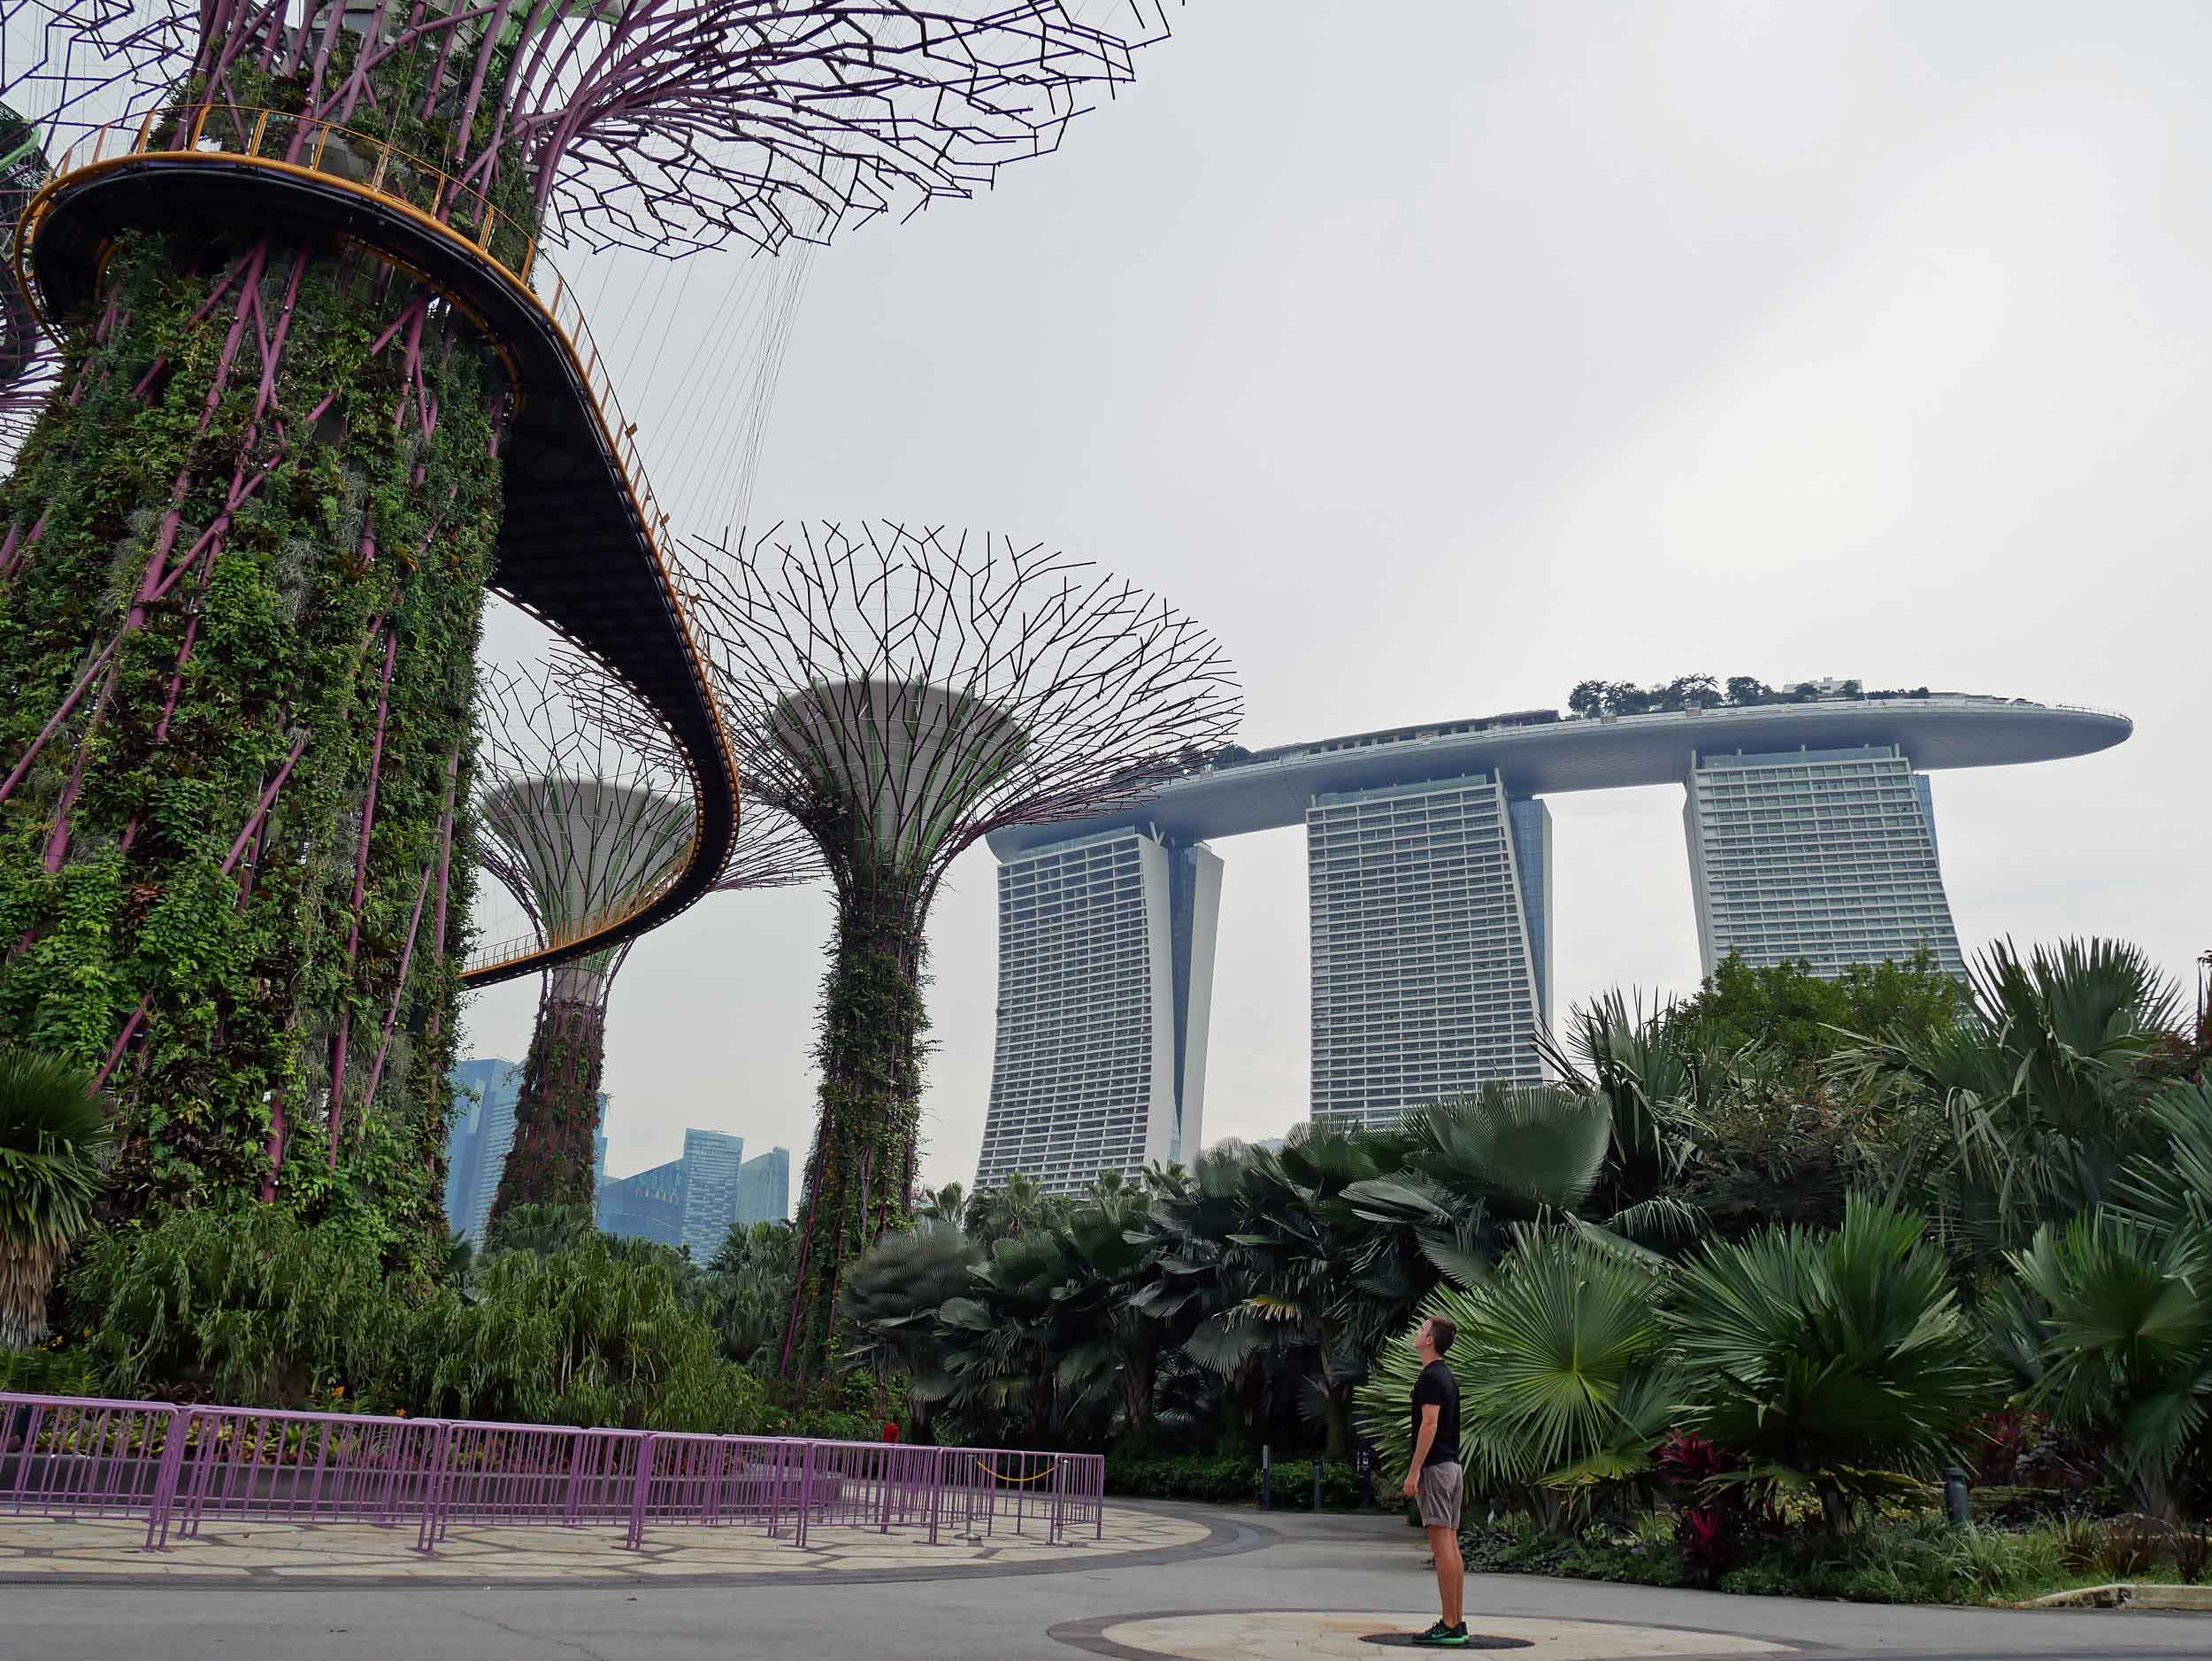 The next morning, we visited Gardens by the Bay, which lies in the shadow of towering Marina Bay Sands (April 29).